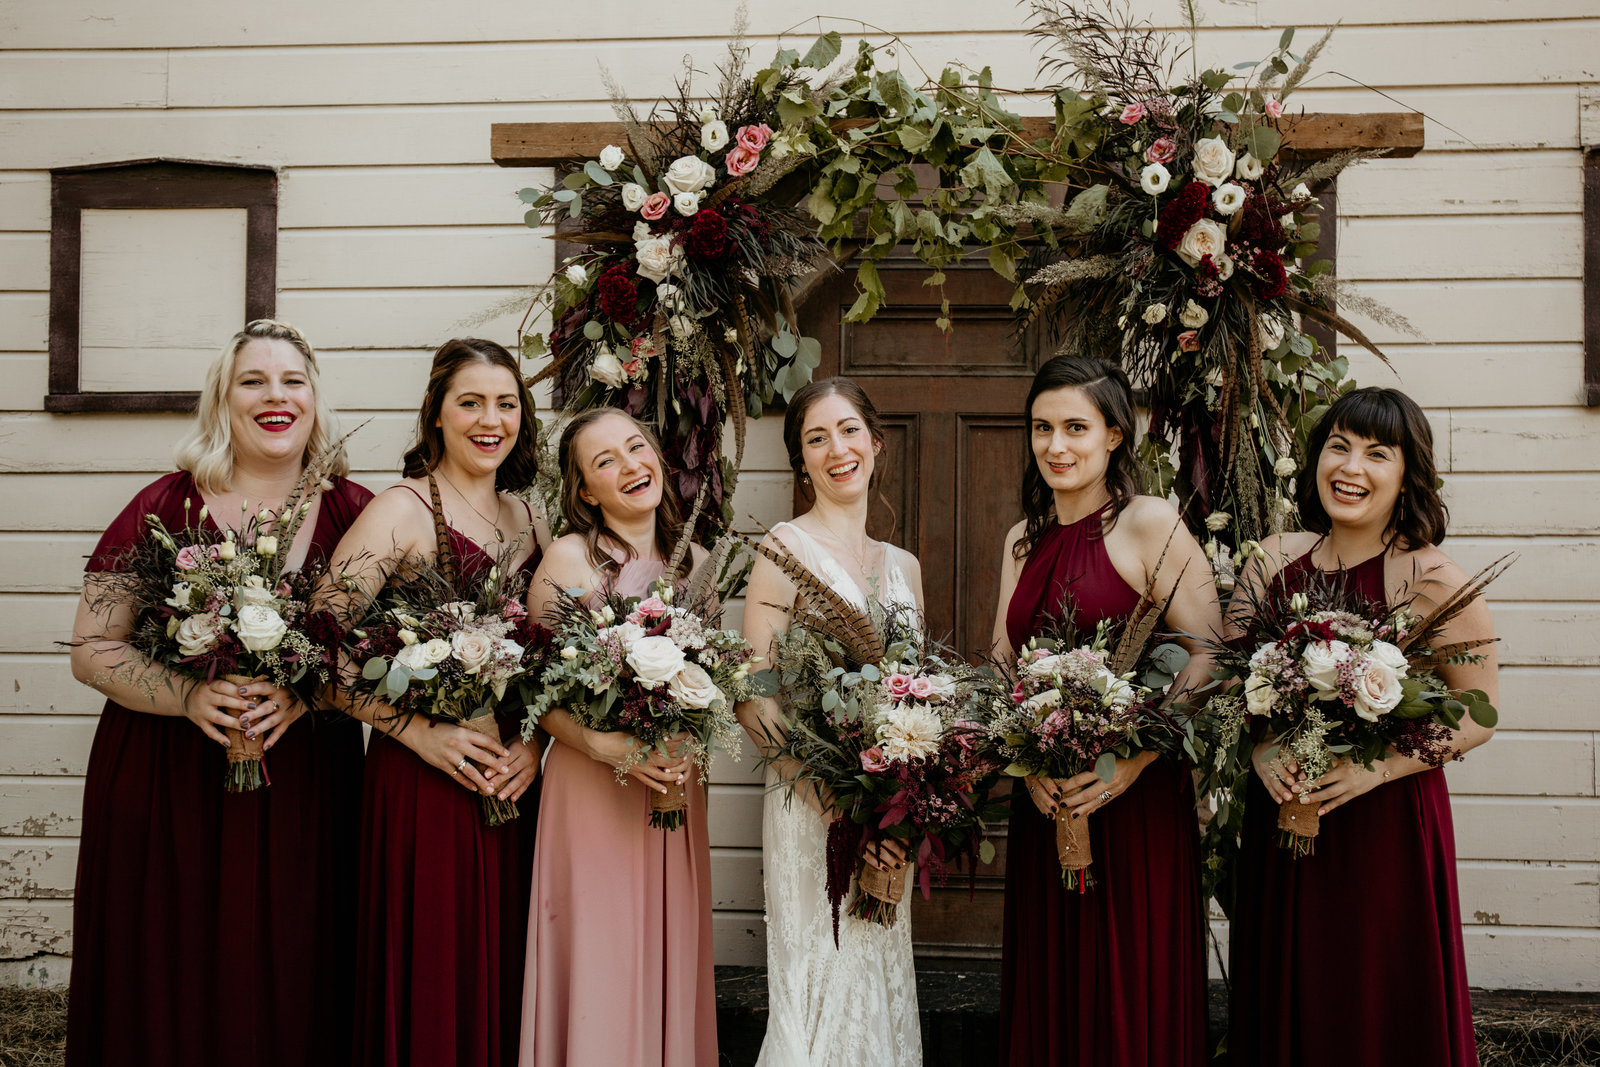 Bride and her bridesmaids laughing.